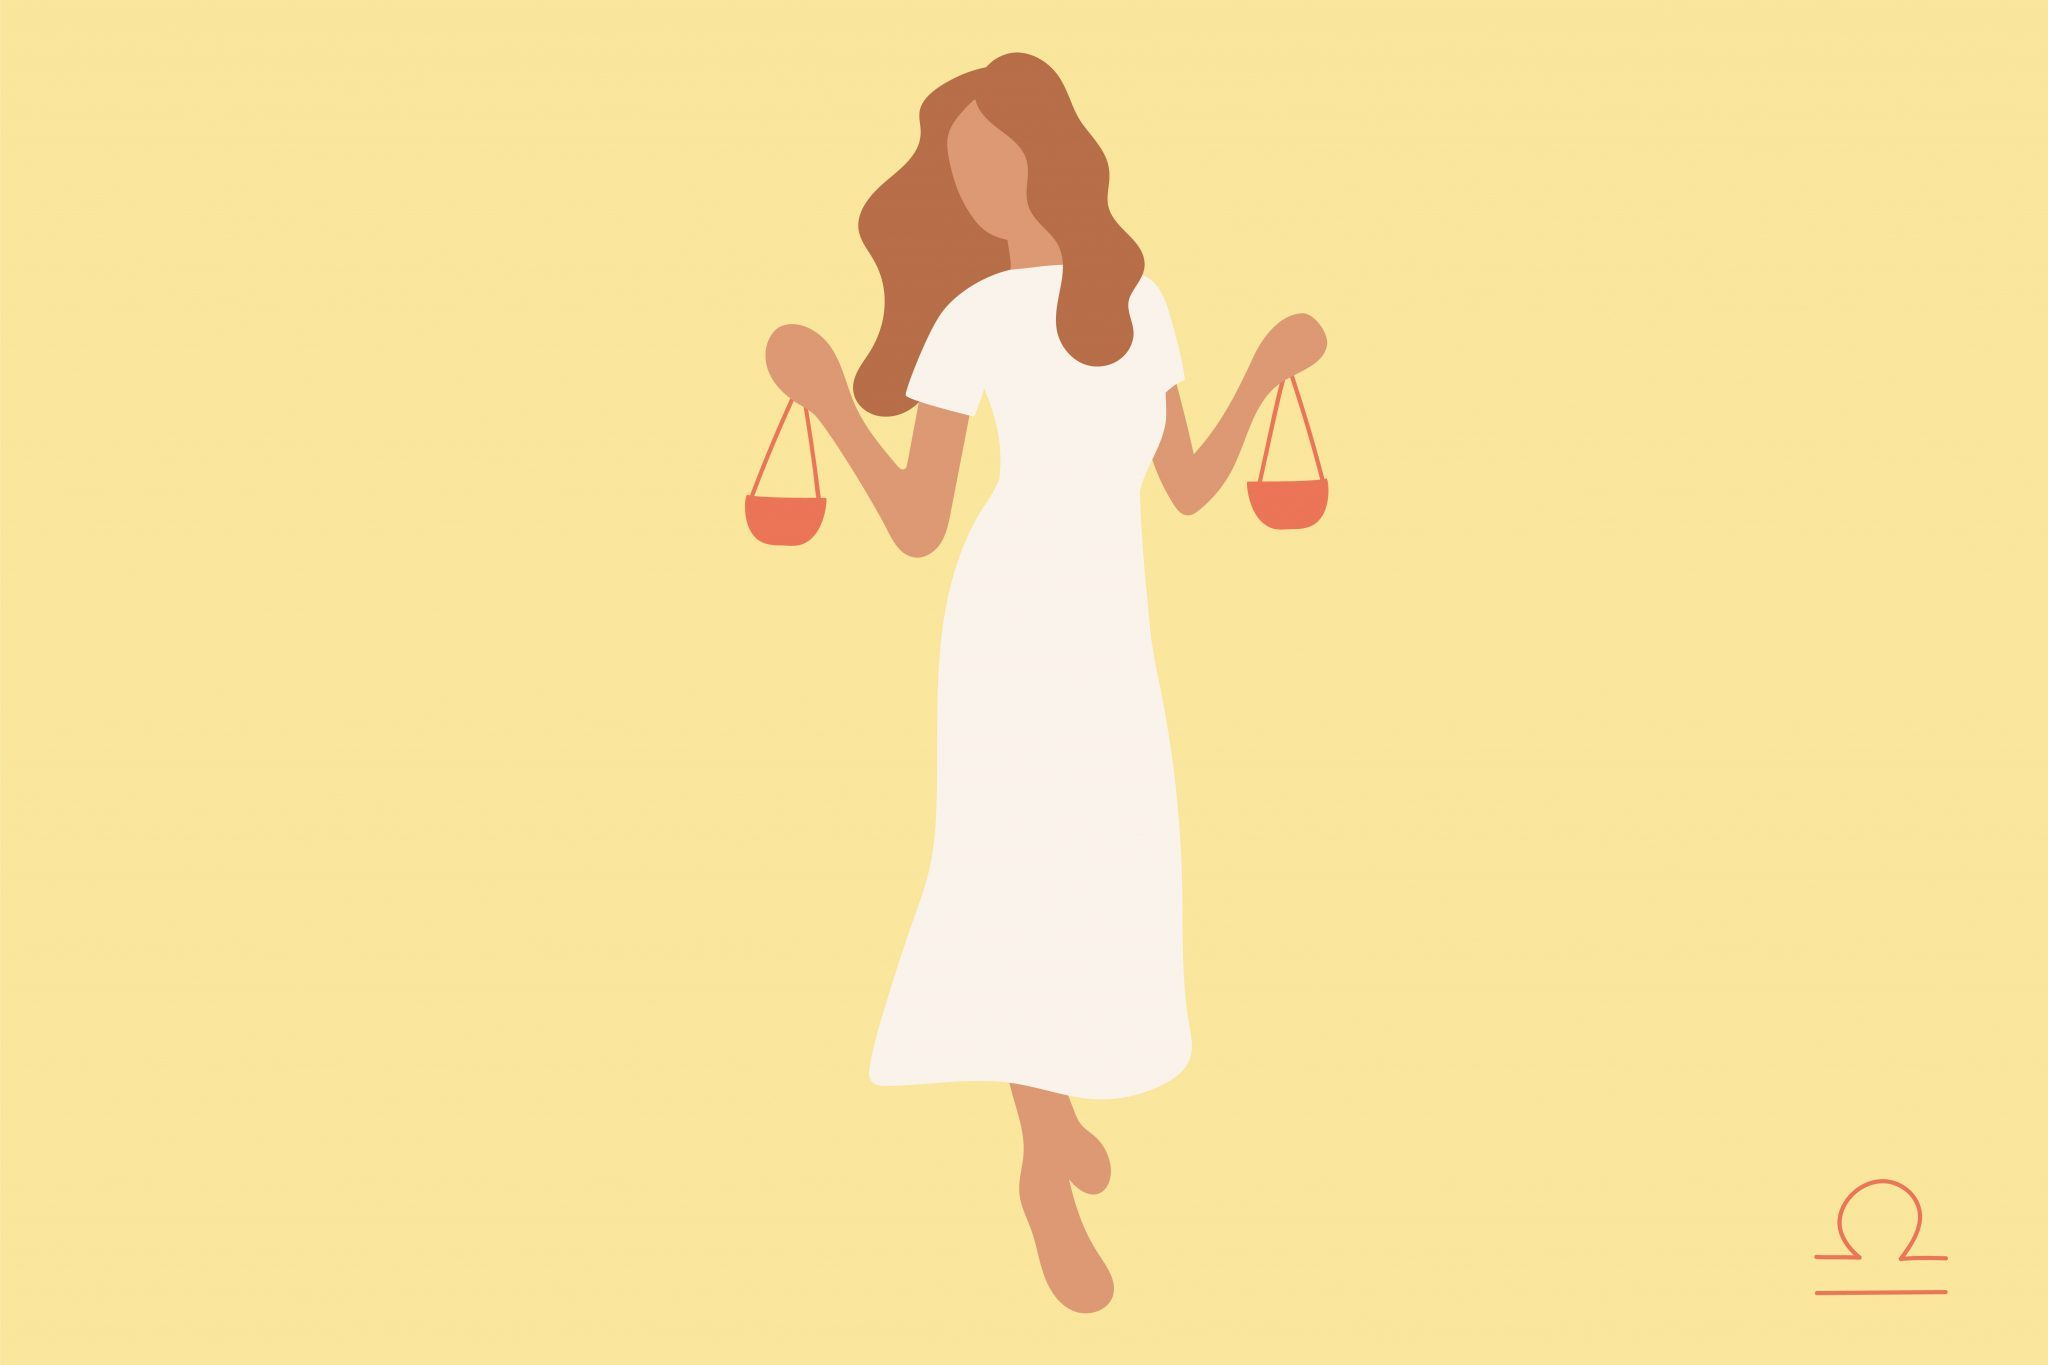 Libra woman illustration